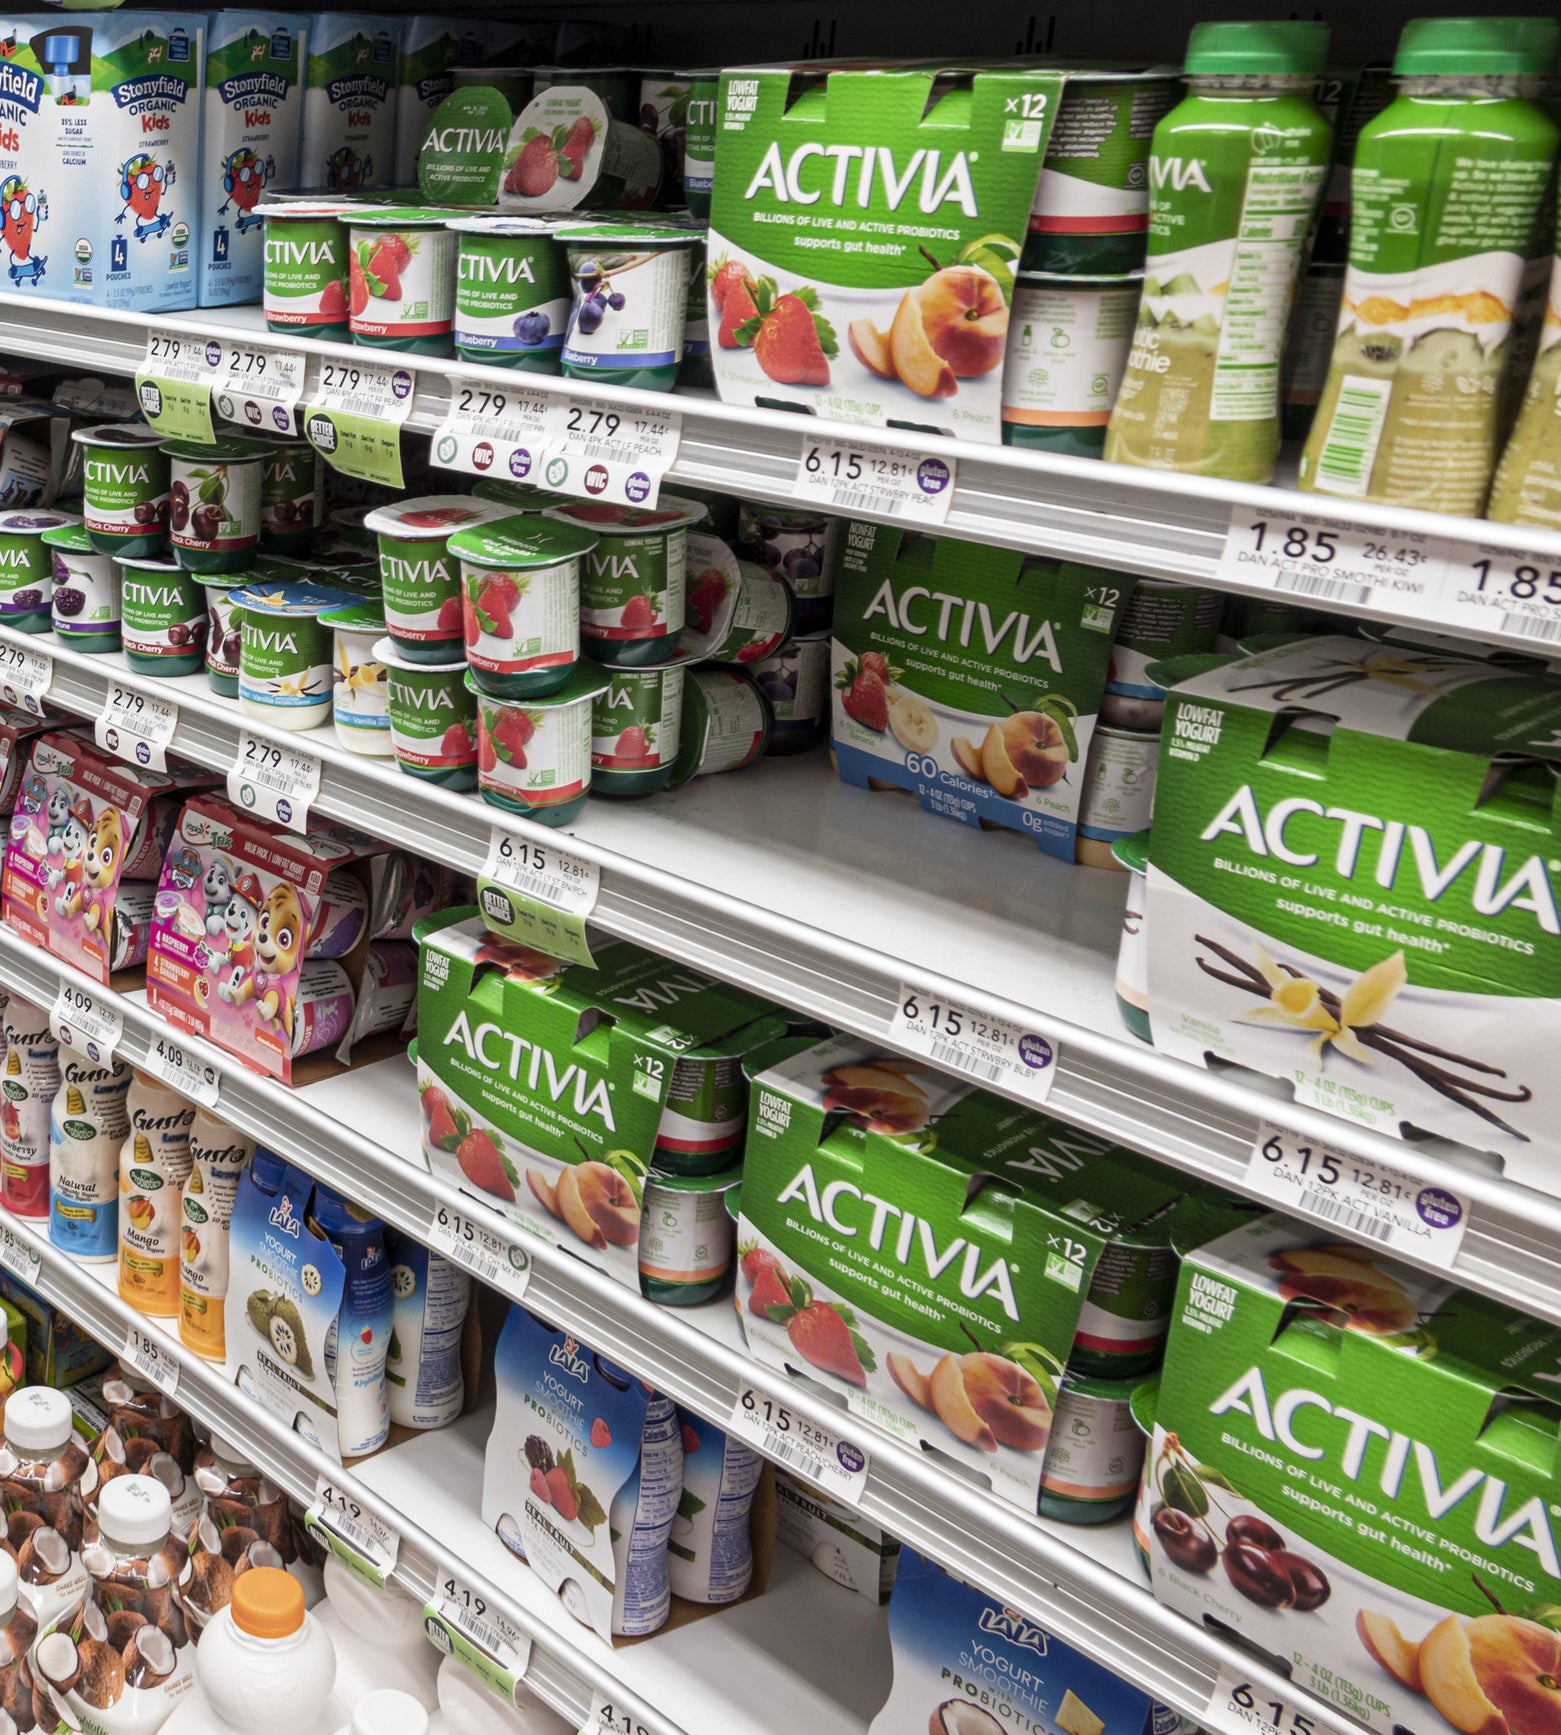 Shelves full of Activia in a grocery store